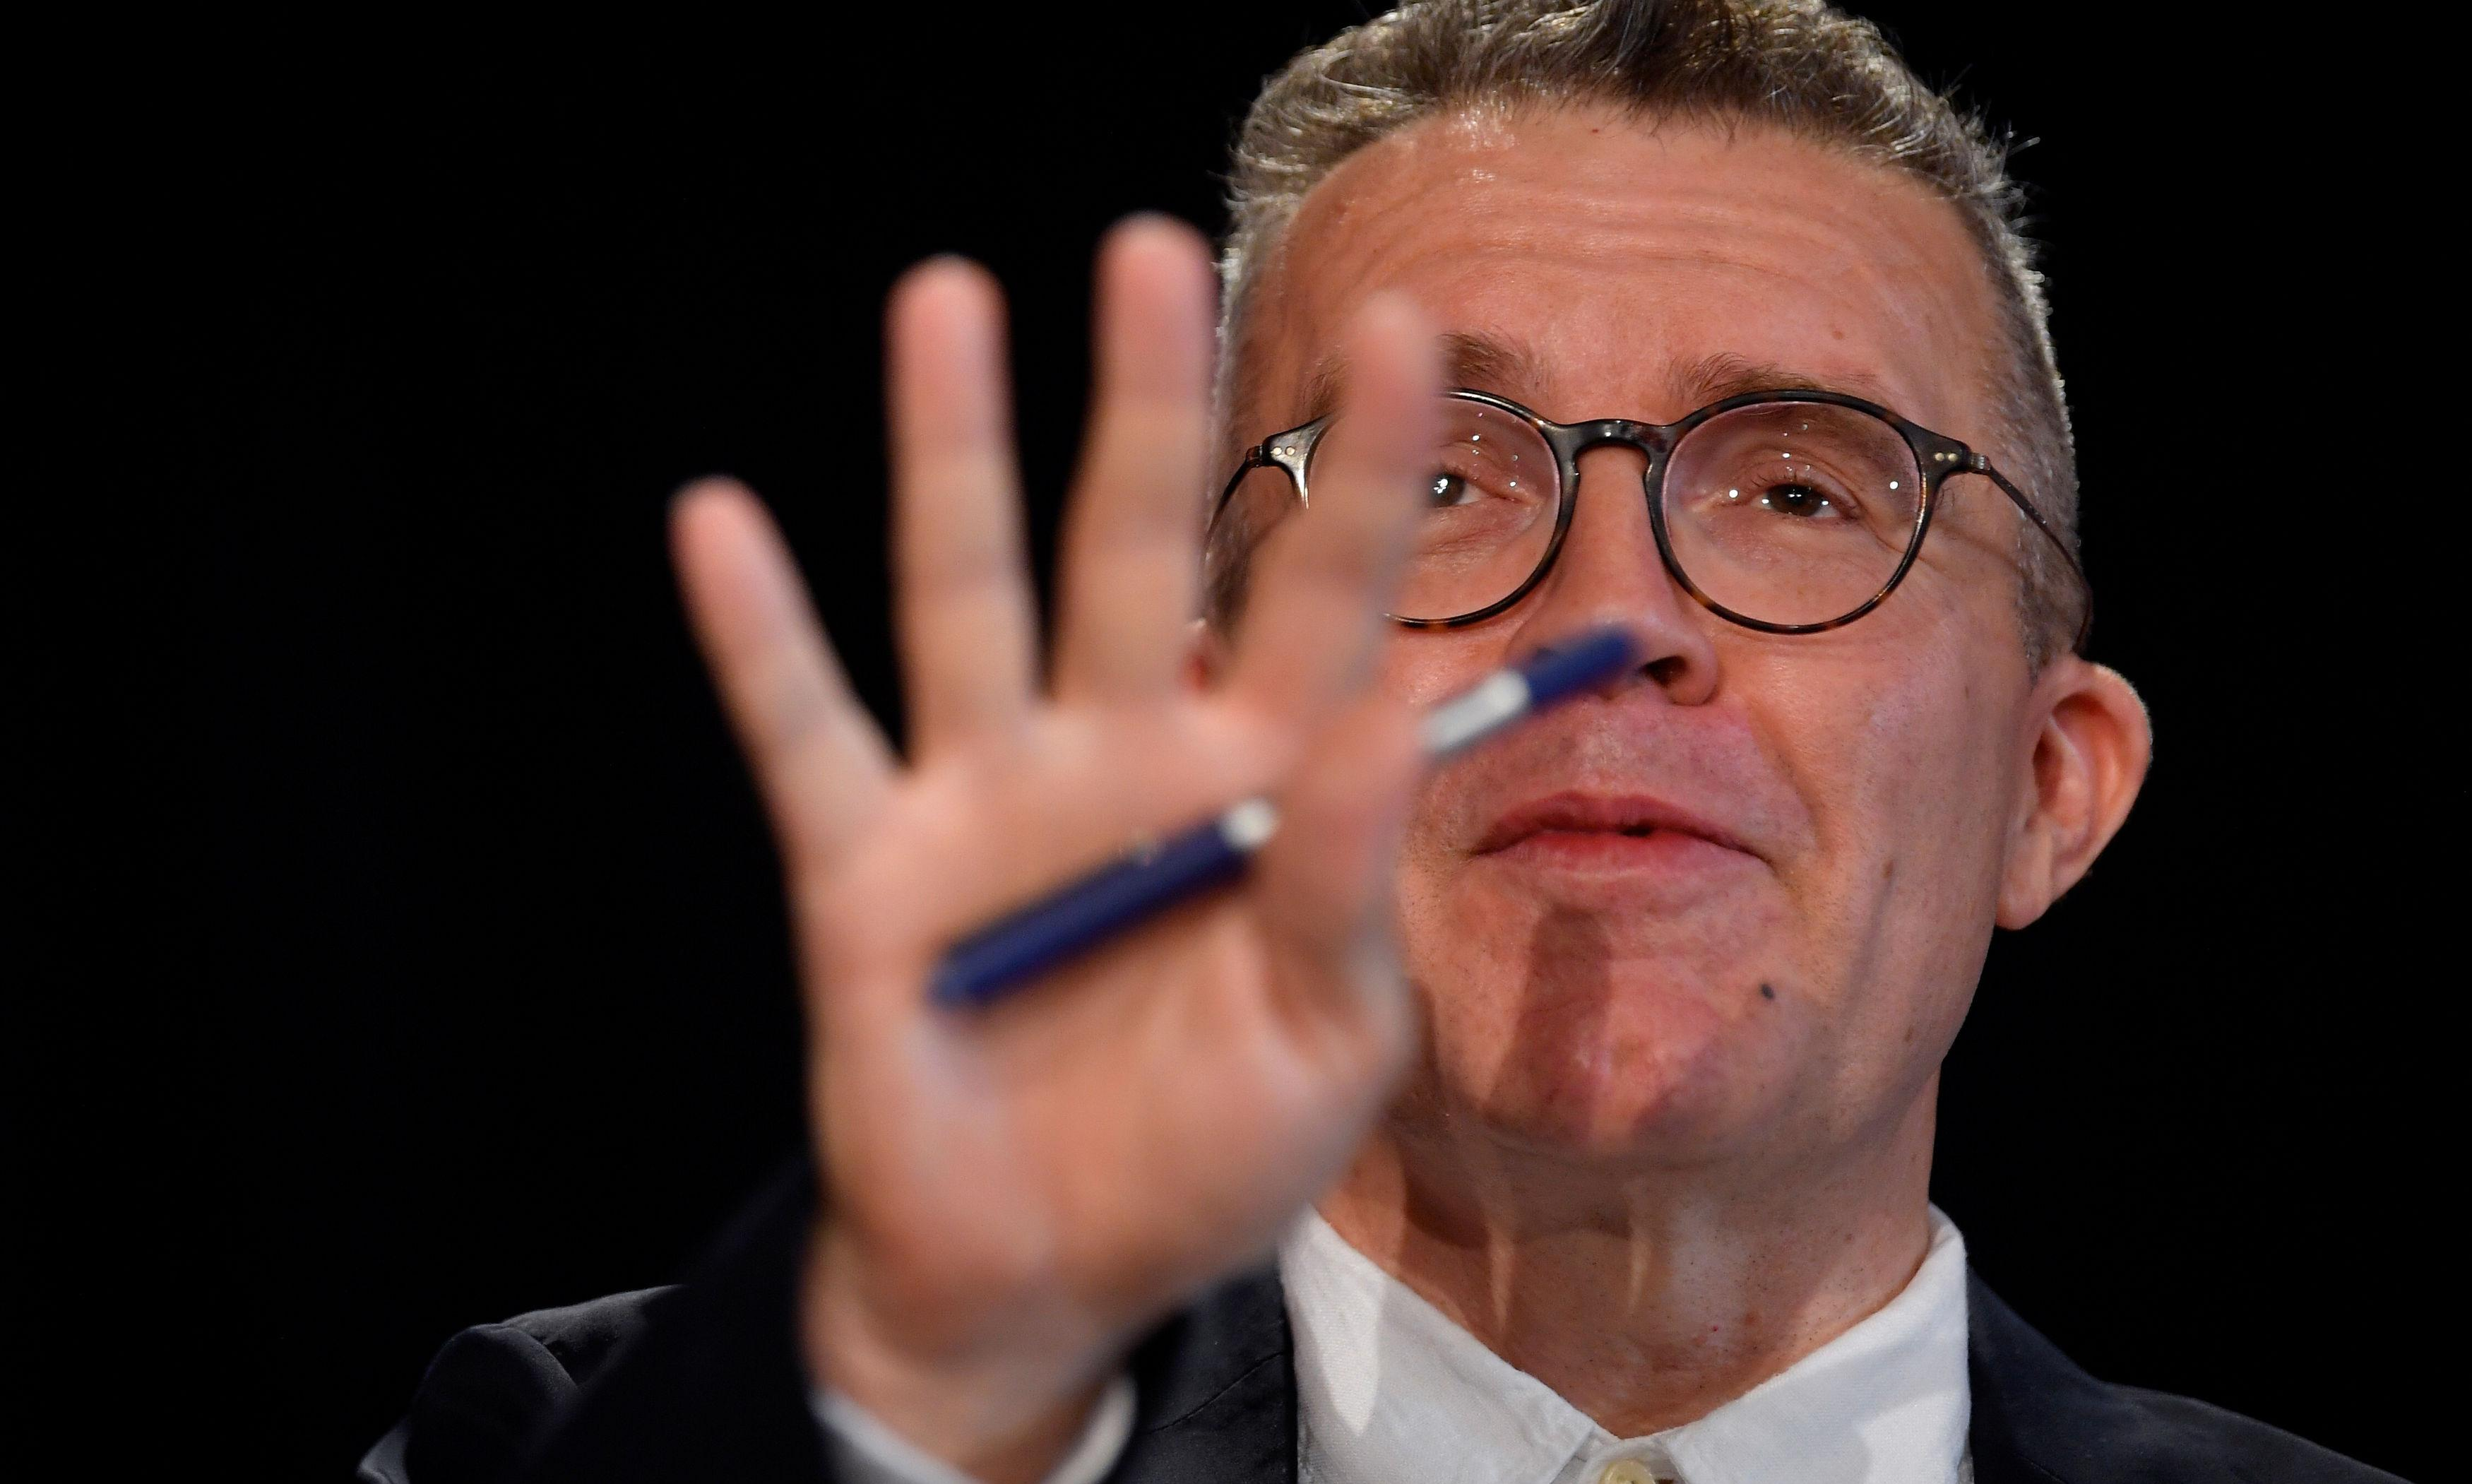 The failed Watson plot exposes what really scares Corbyn and his coterie